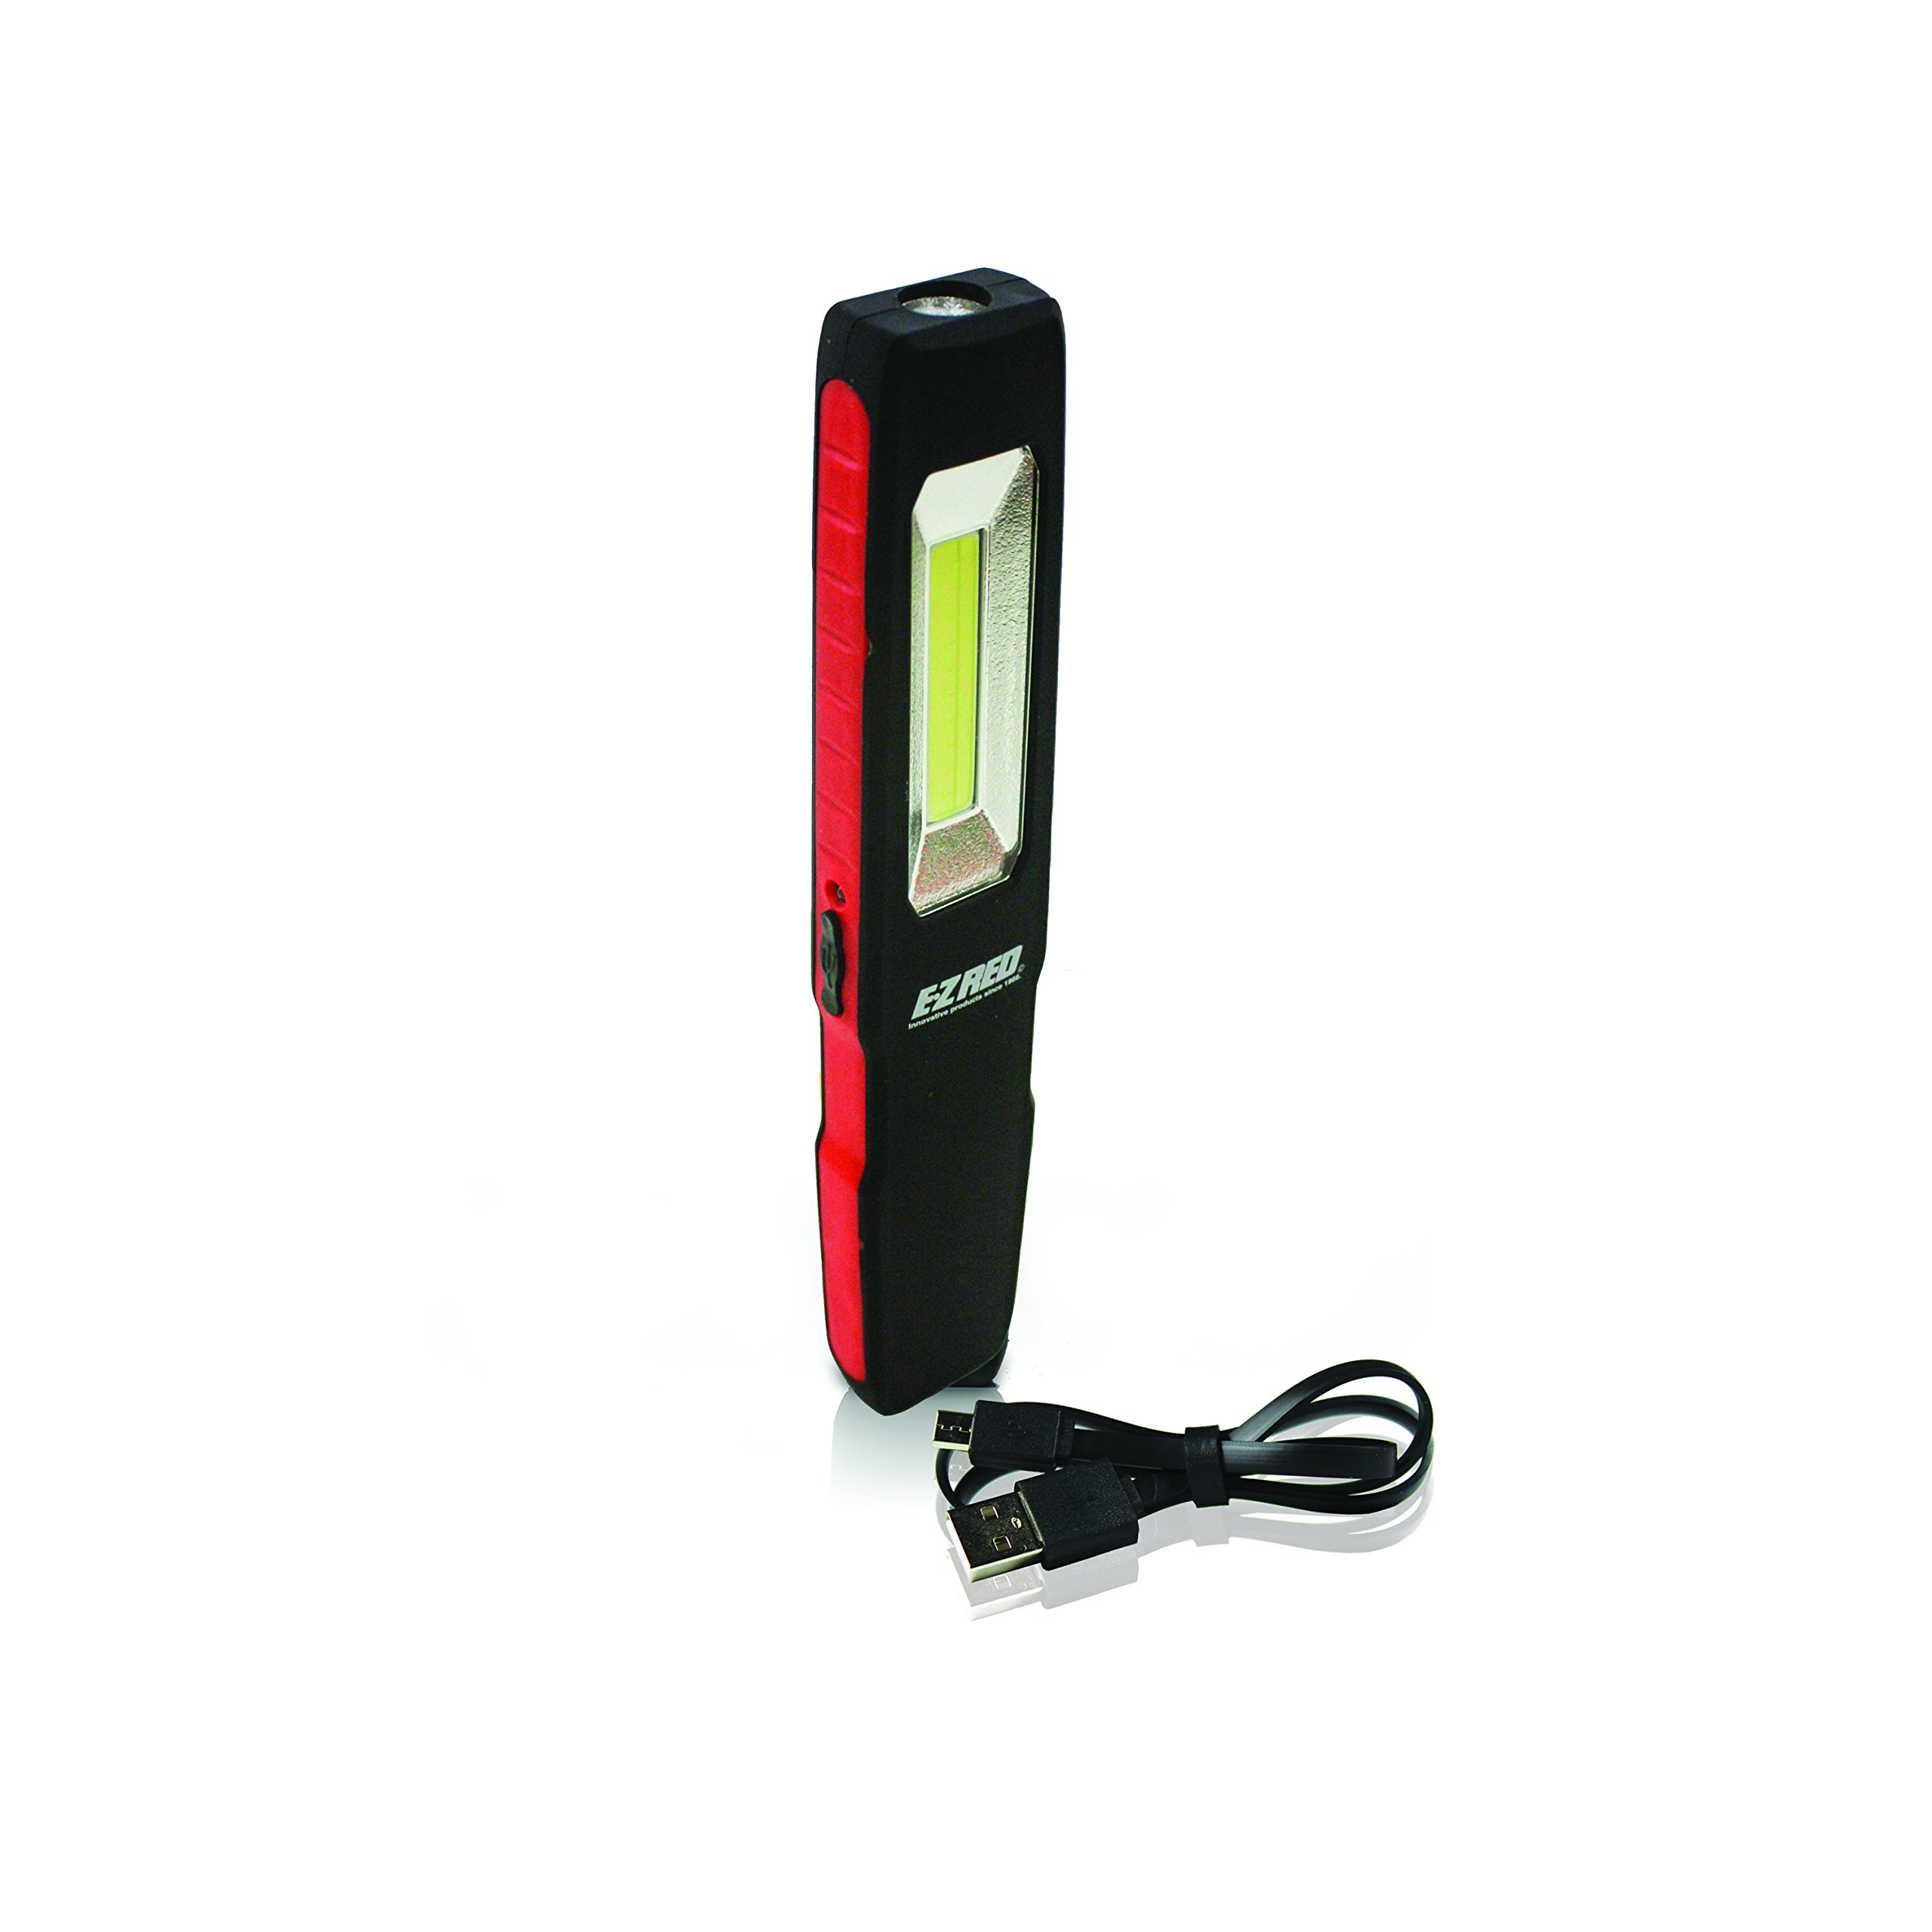 EZ RED PL175R 175 Lm Dual Beam USB Rechargeable Slim Pocket Light, Red